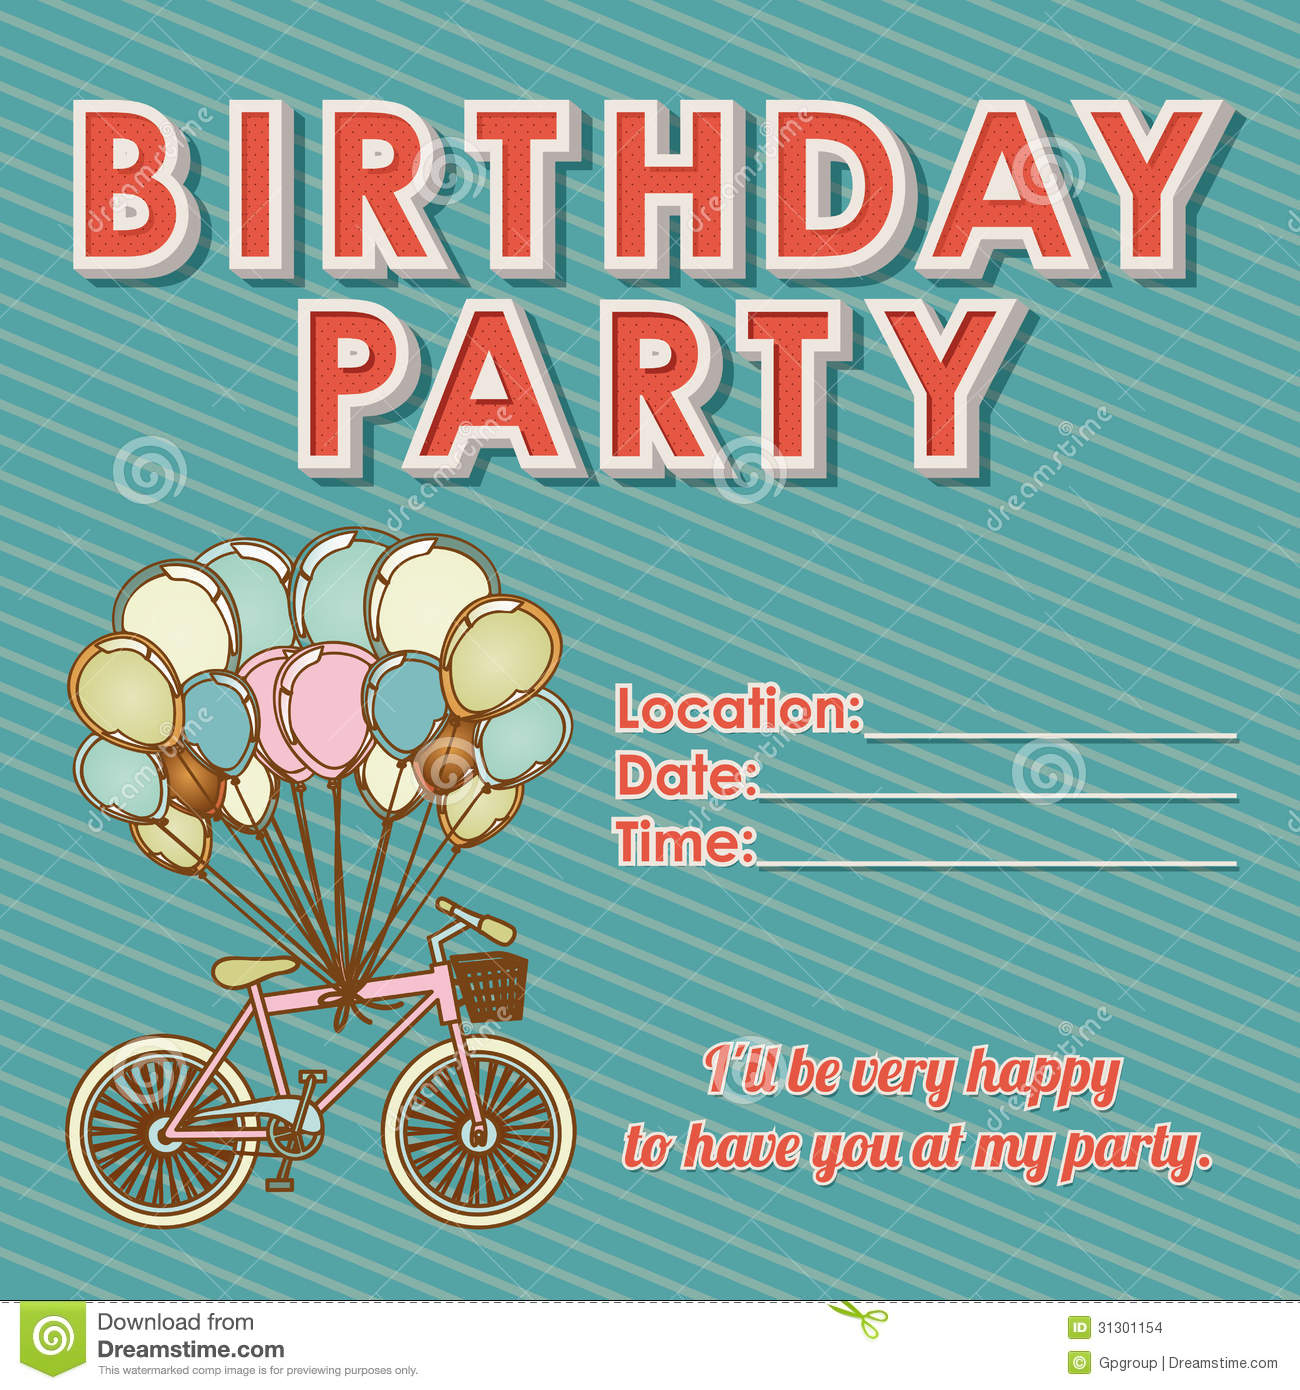 Childrens Birthday Invitation Stock Vector Illustration of bike